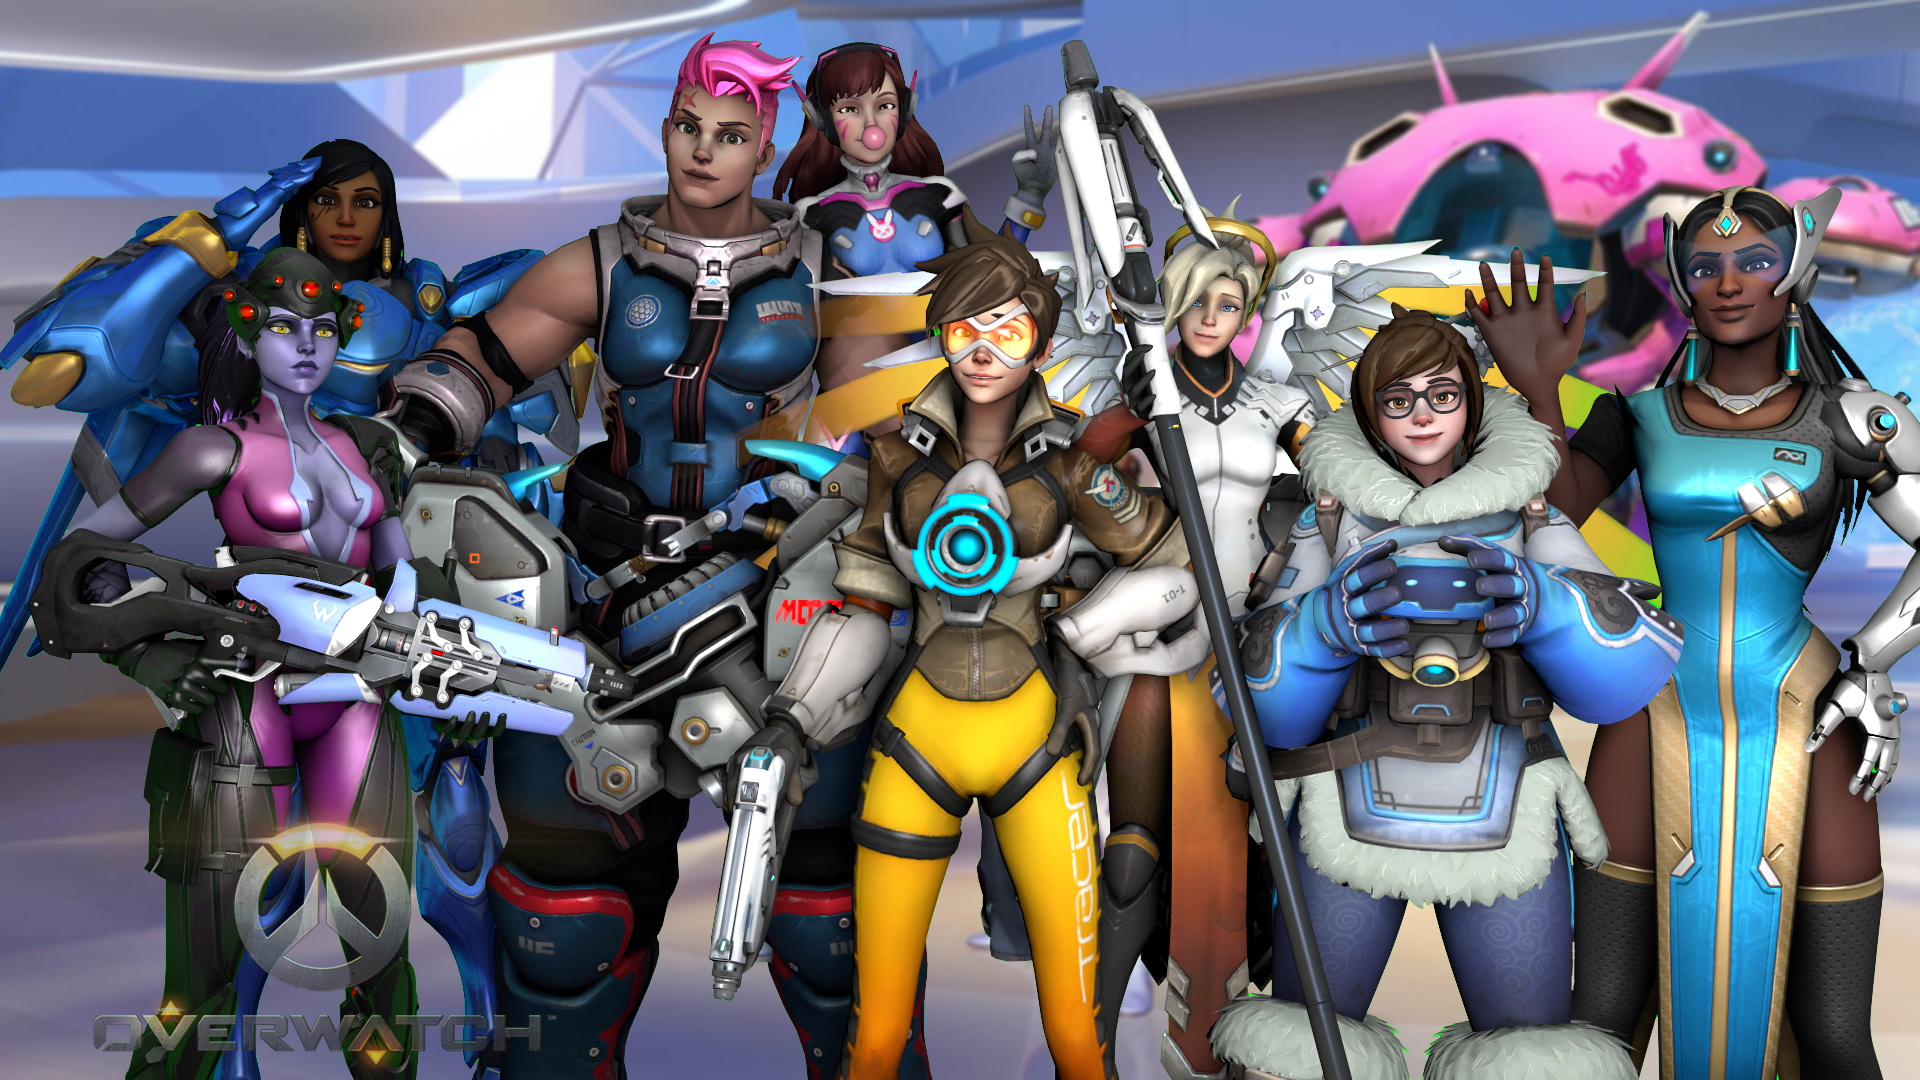 if you re such a big overwatch fan then name which character i m